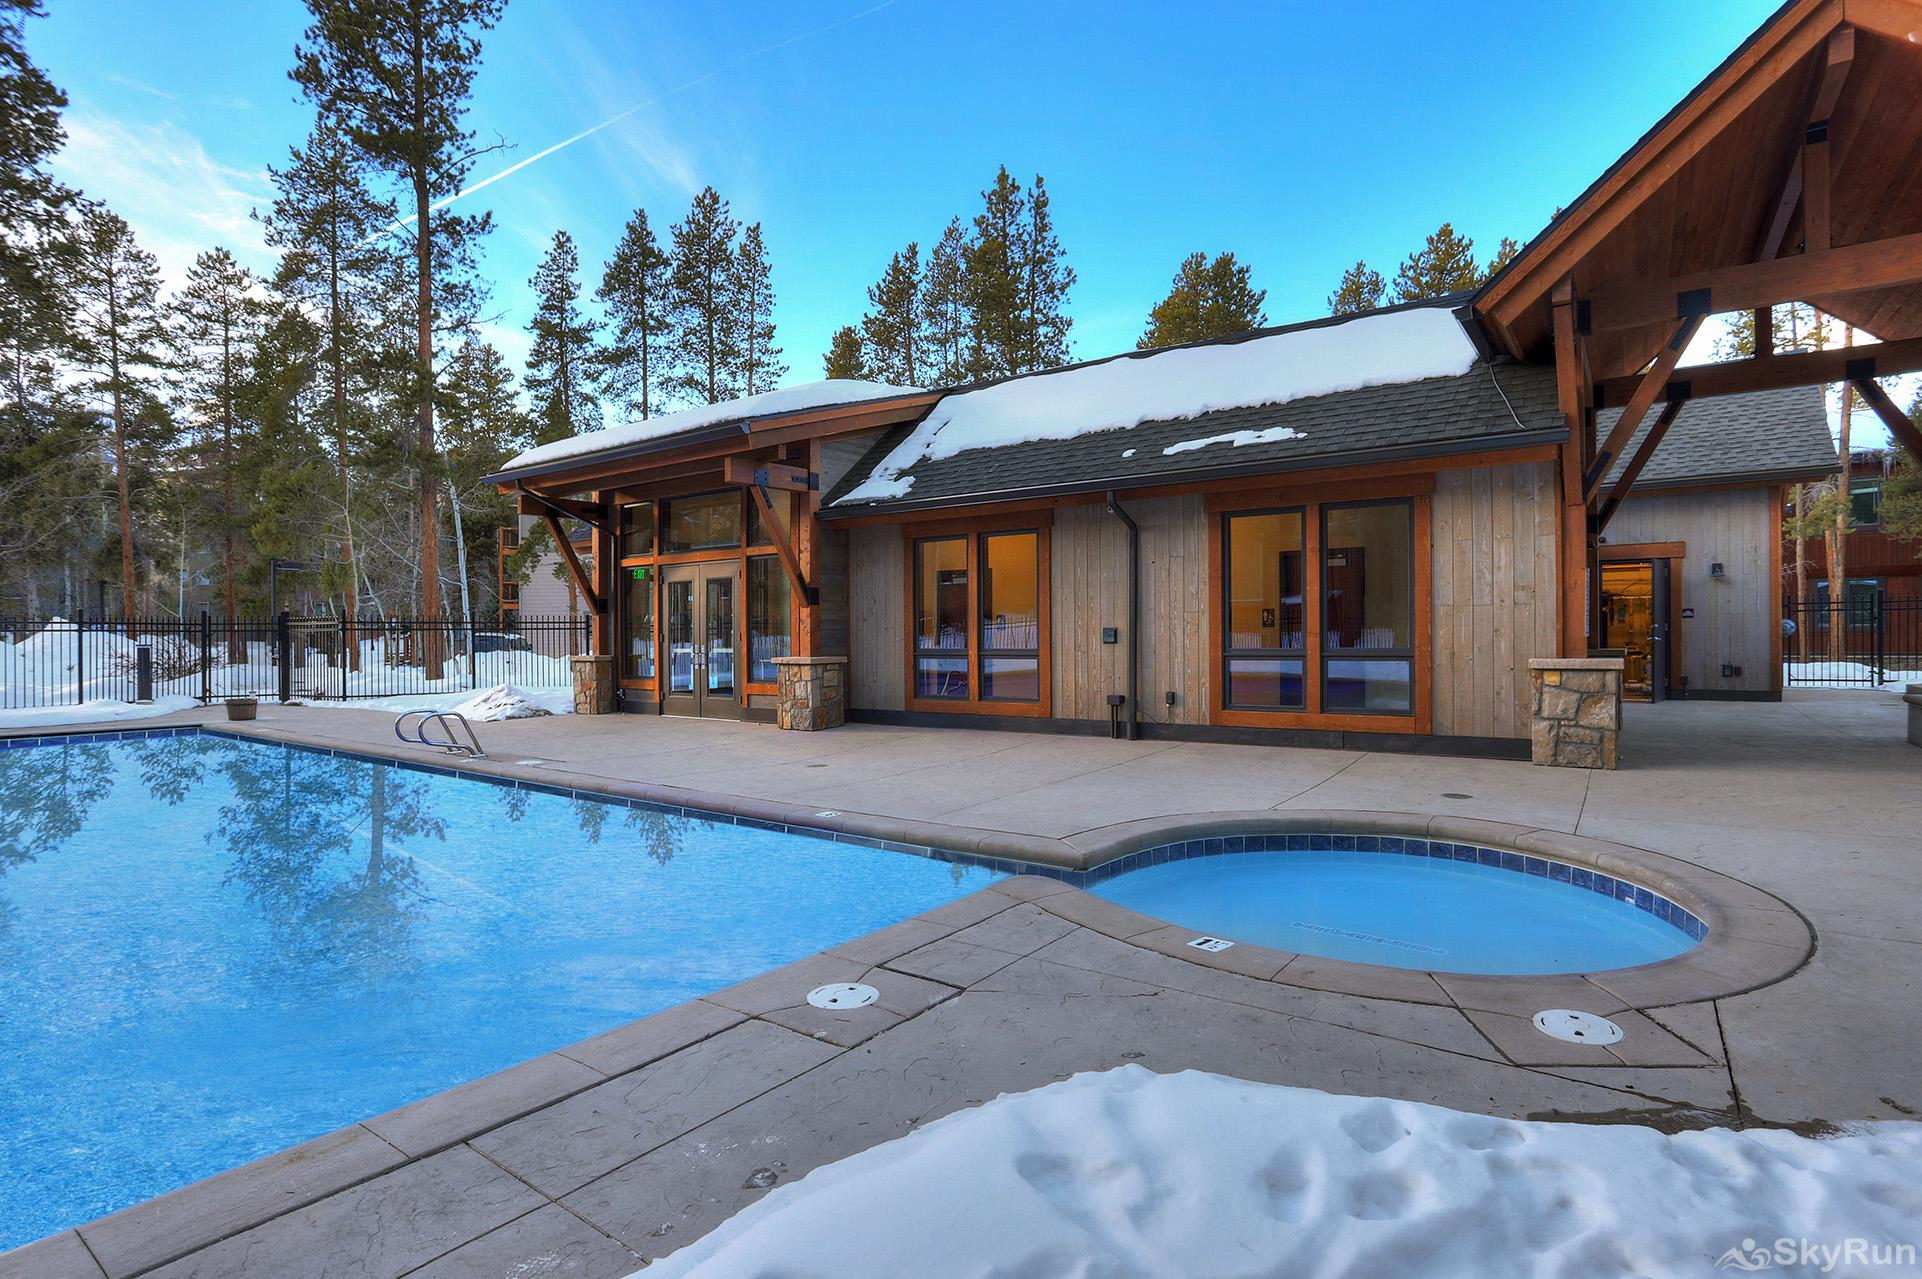 Pine Creek Lodge Guests enjoy access to the Columbine Pool & Hot Tub Complex